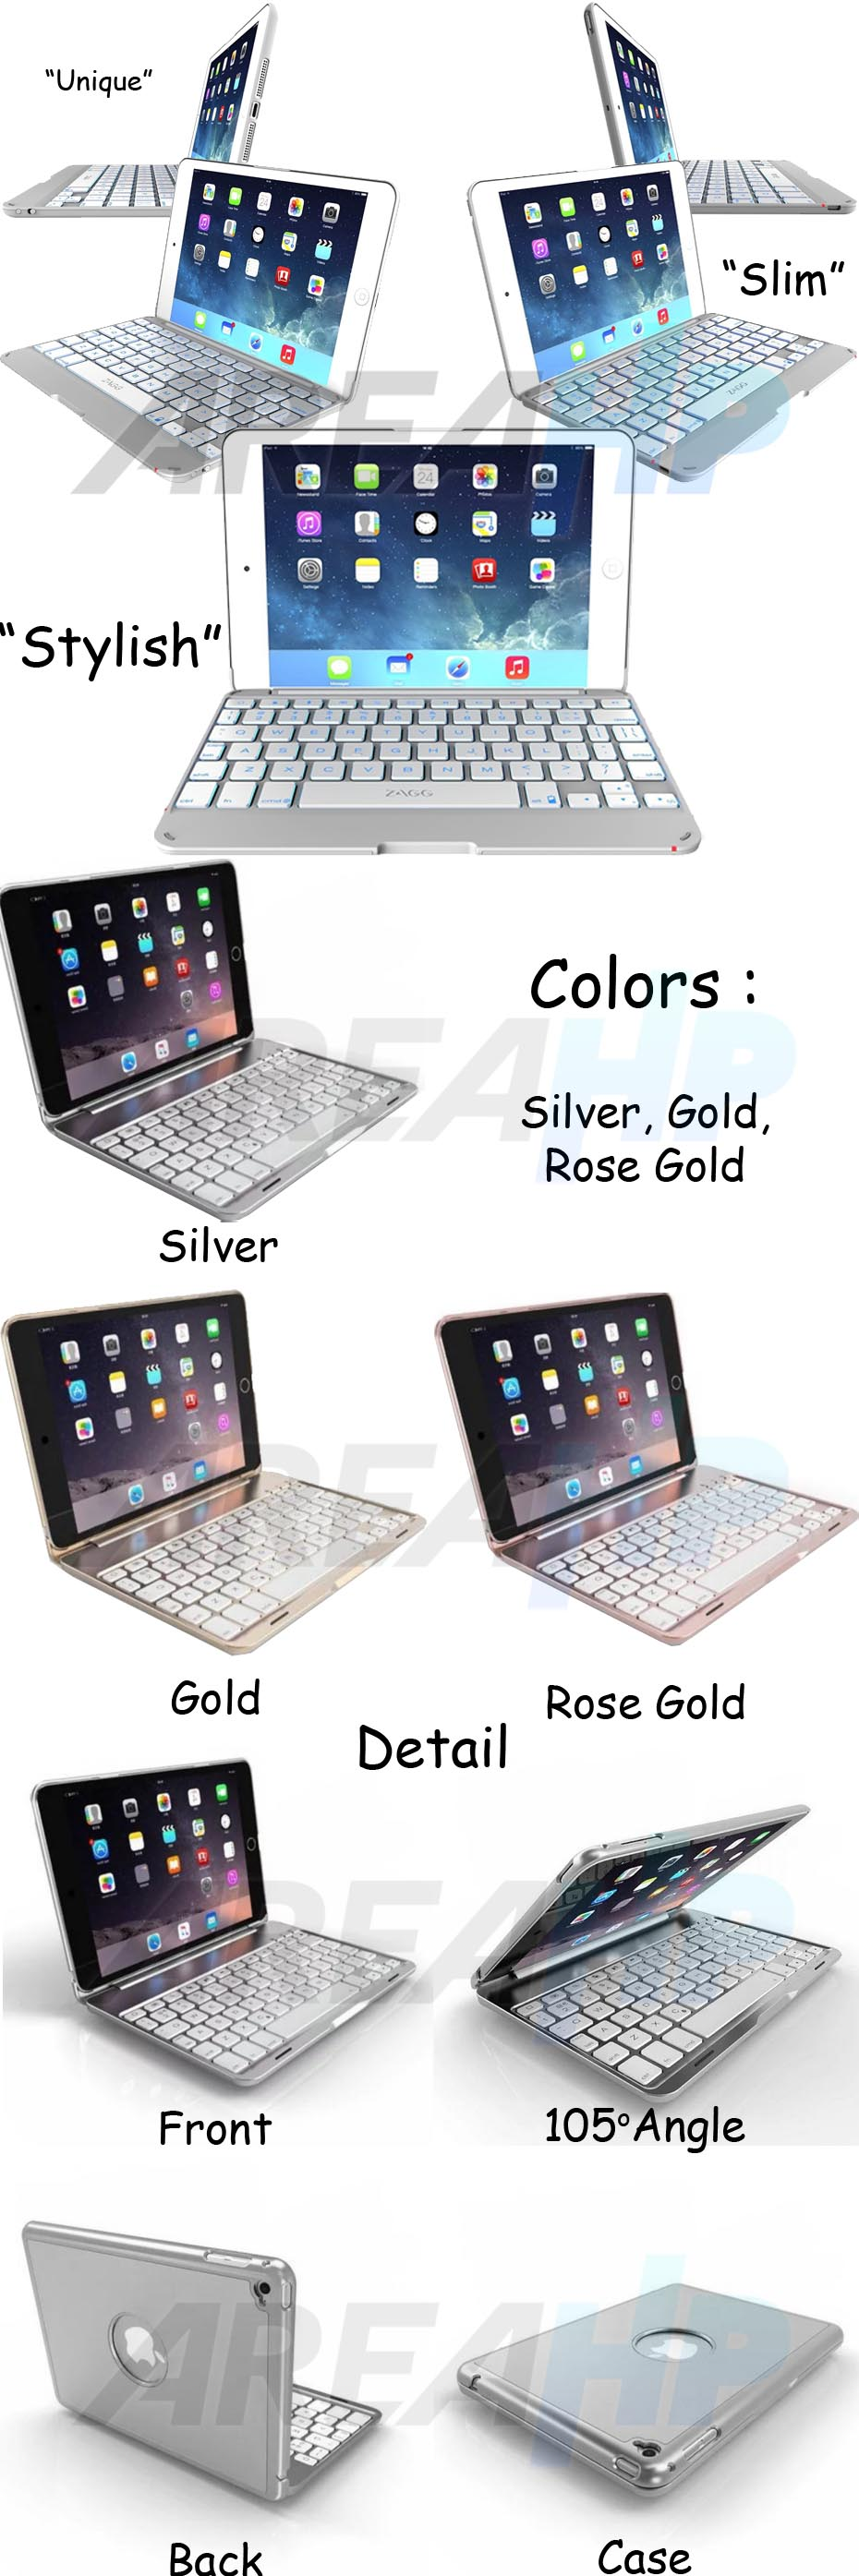 Ultra Slim Keyboard Case Backlight for iPad Mini Overview